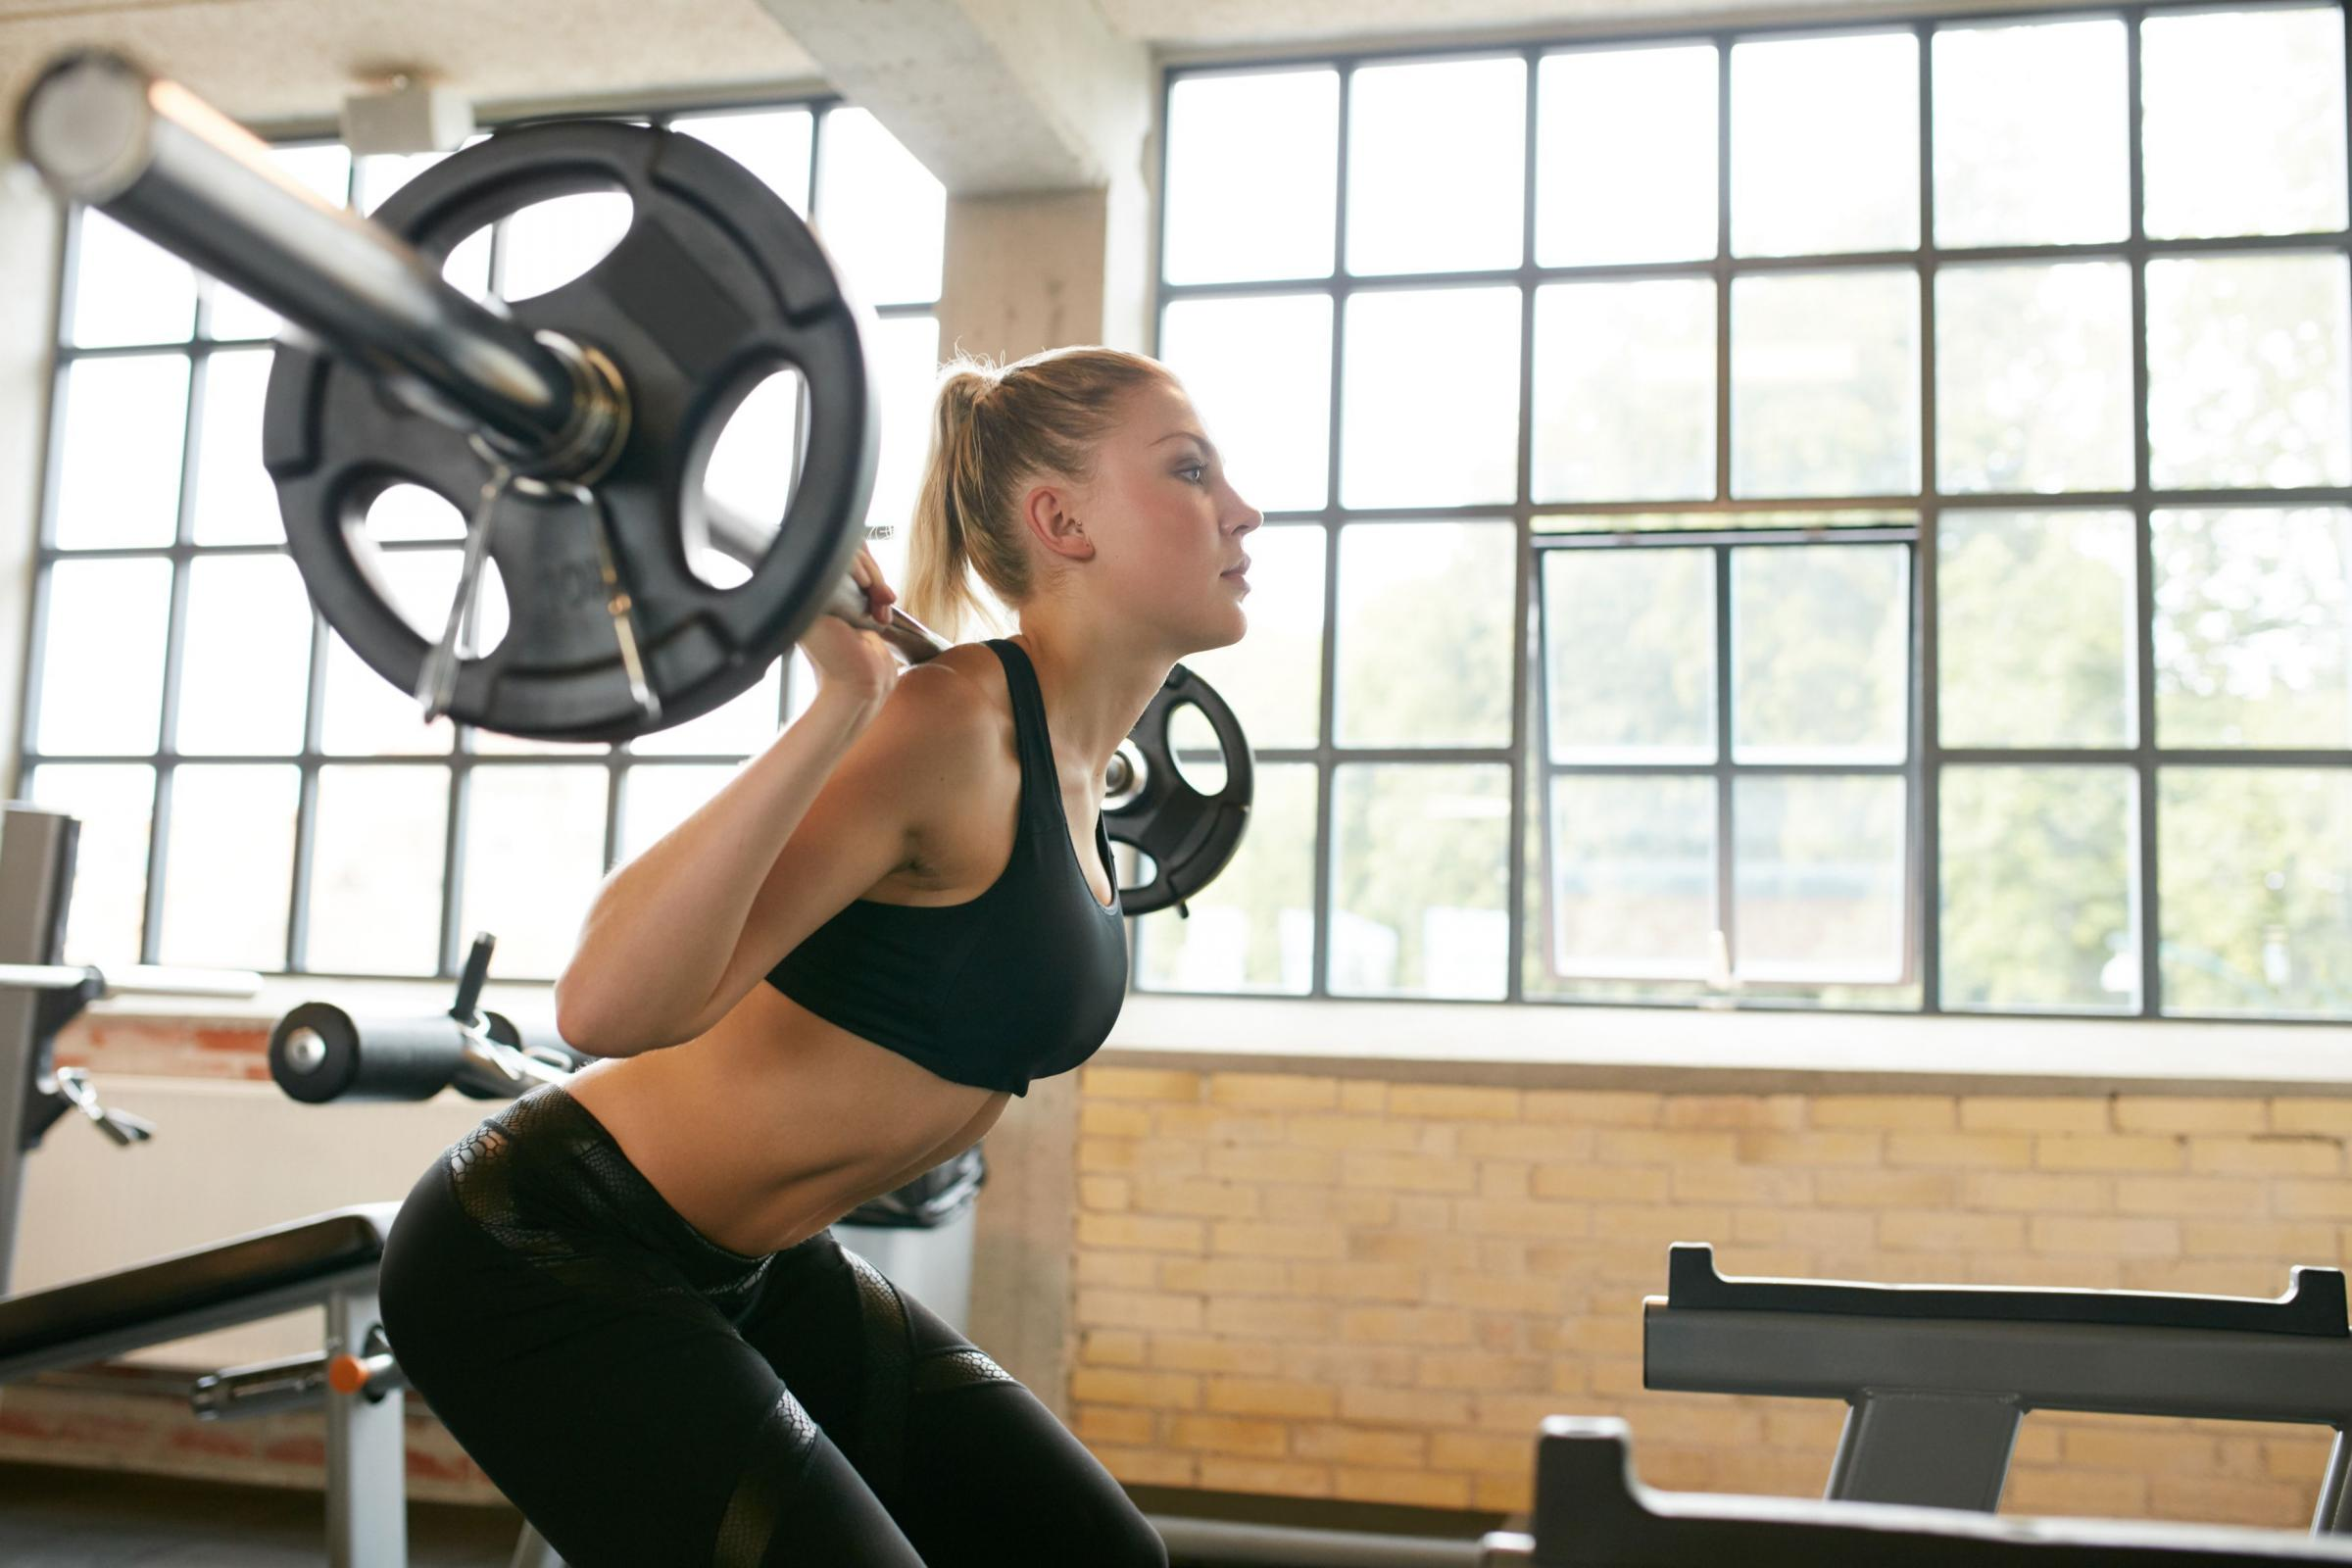 Forum on this topic: Five reasons to lift weights, five-reasons-to-lift-weights/